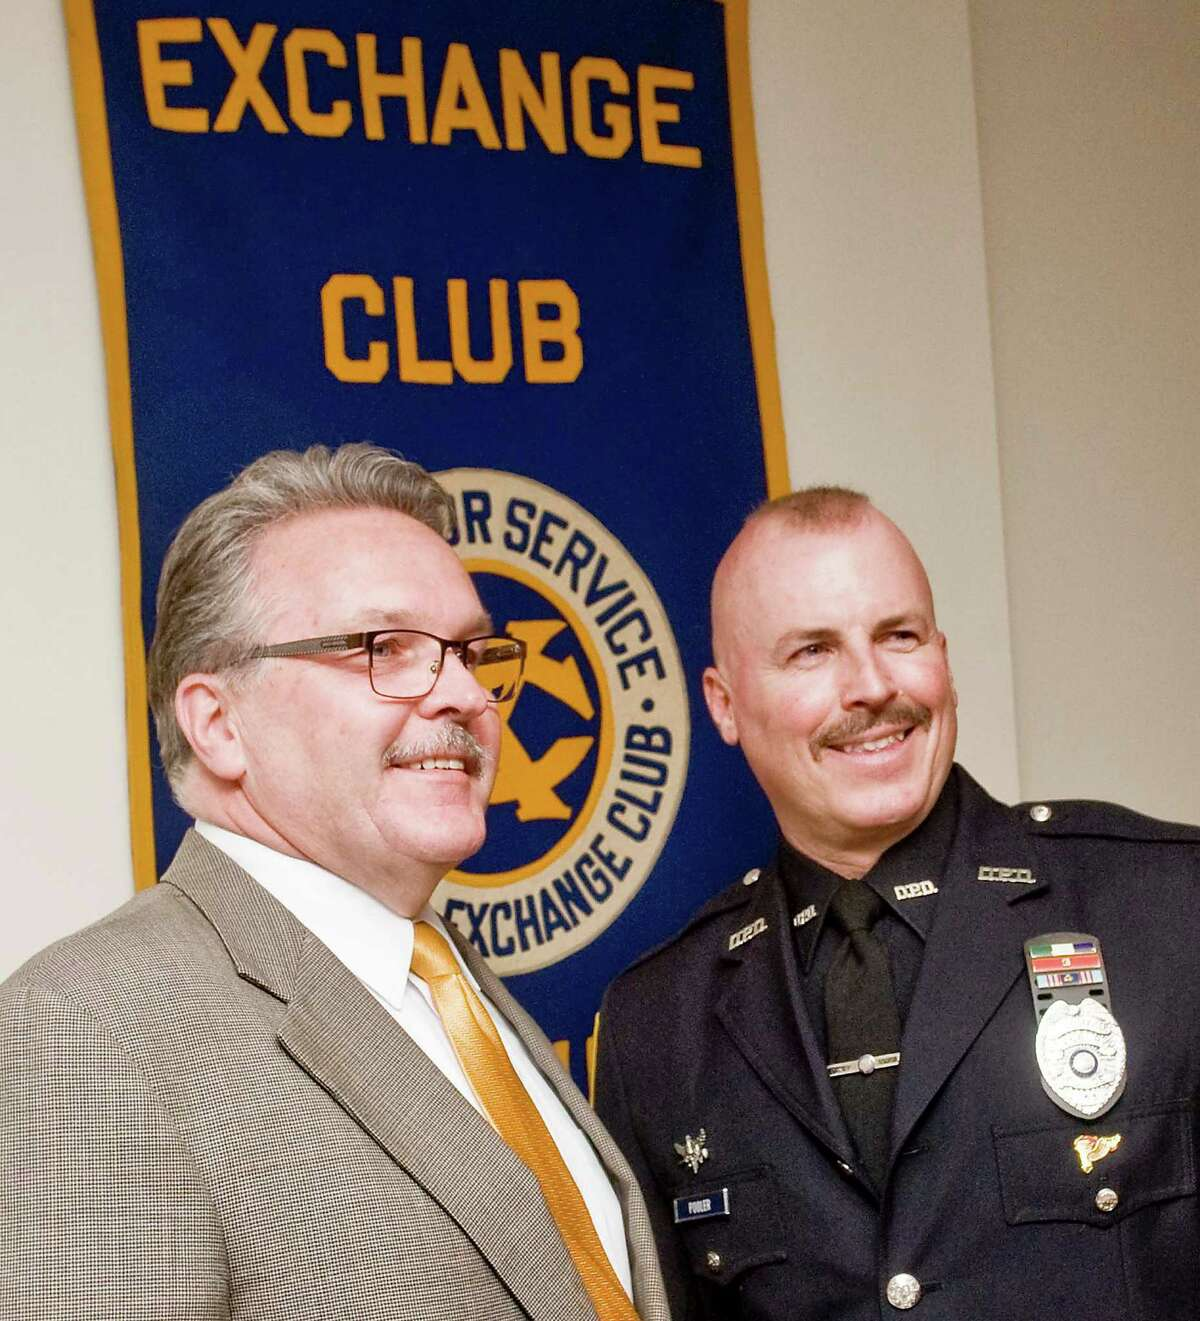 Danbury Mayoral Assistant Dean Esposito with his cousing Danbury police Officer Joseph Pooler who is being honored as City of Danbury Police Officer of the Year by The Exchange Club of Danbury at Anthonyís Lake Club in Danbury. Thursday, April 16, 2015